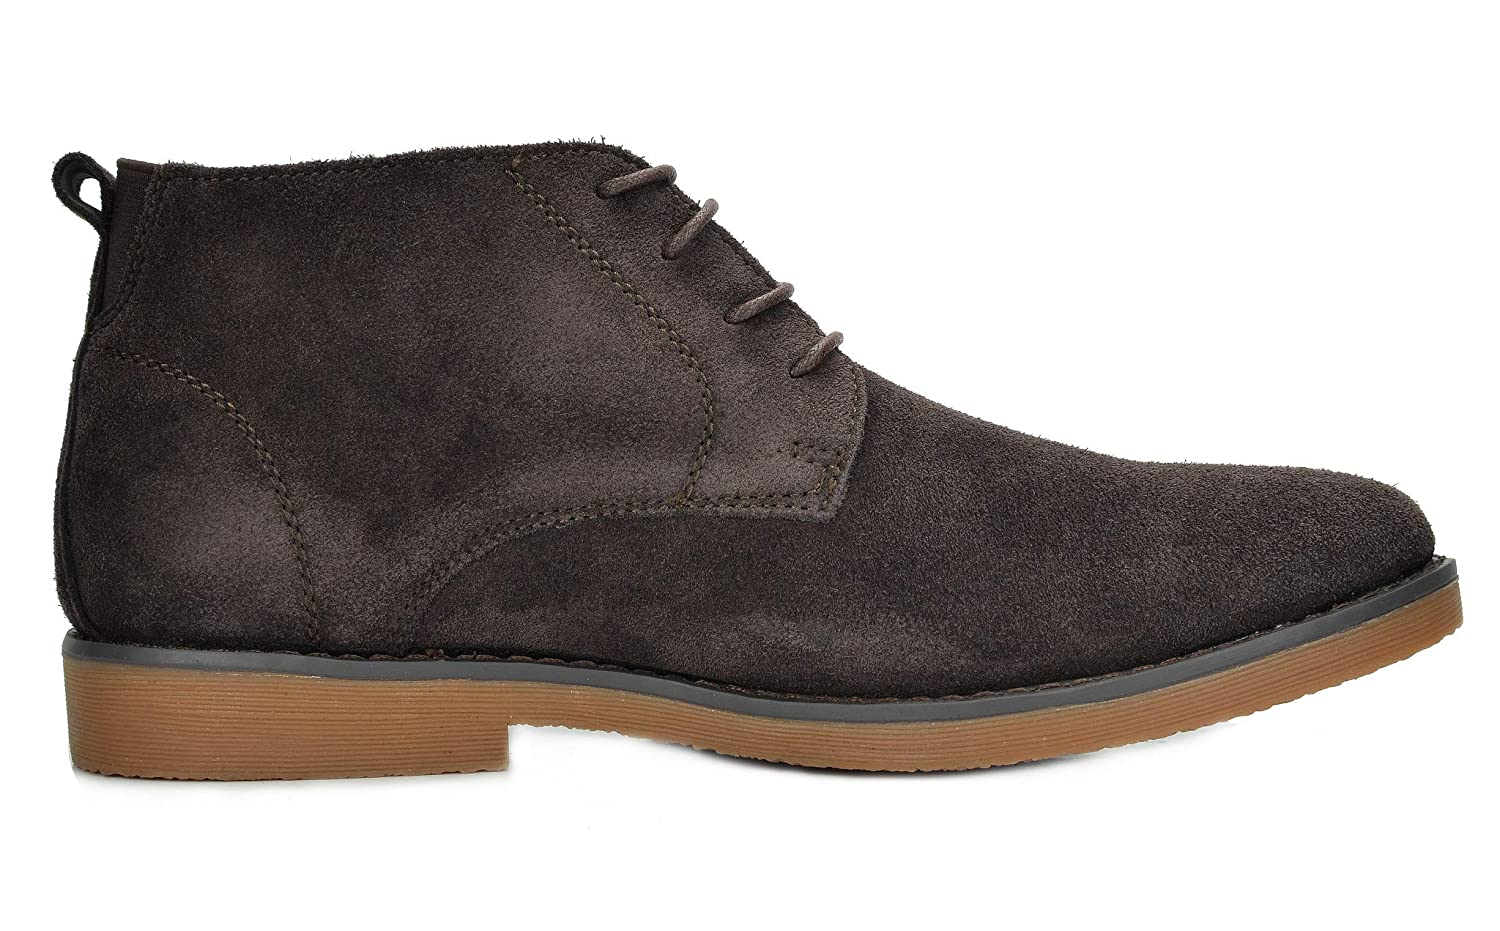 Bruno Marc Mens Classic Original Suede Leather Desert Storm Chukka Boots